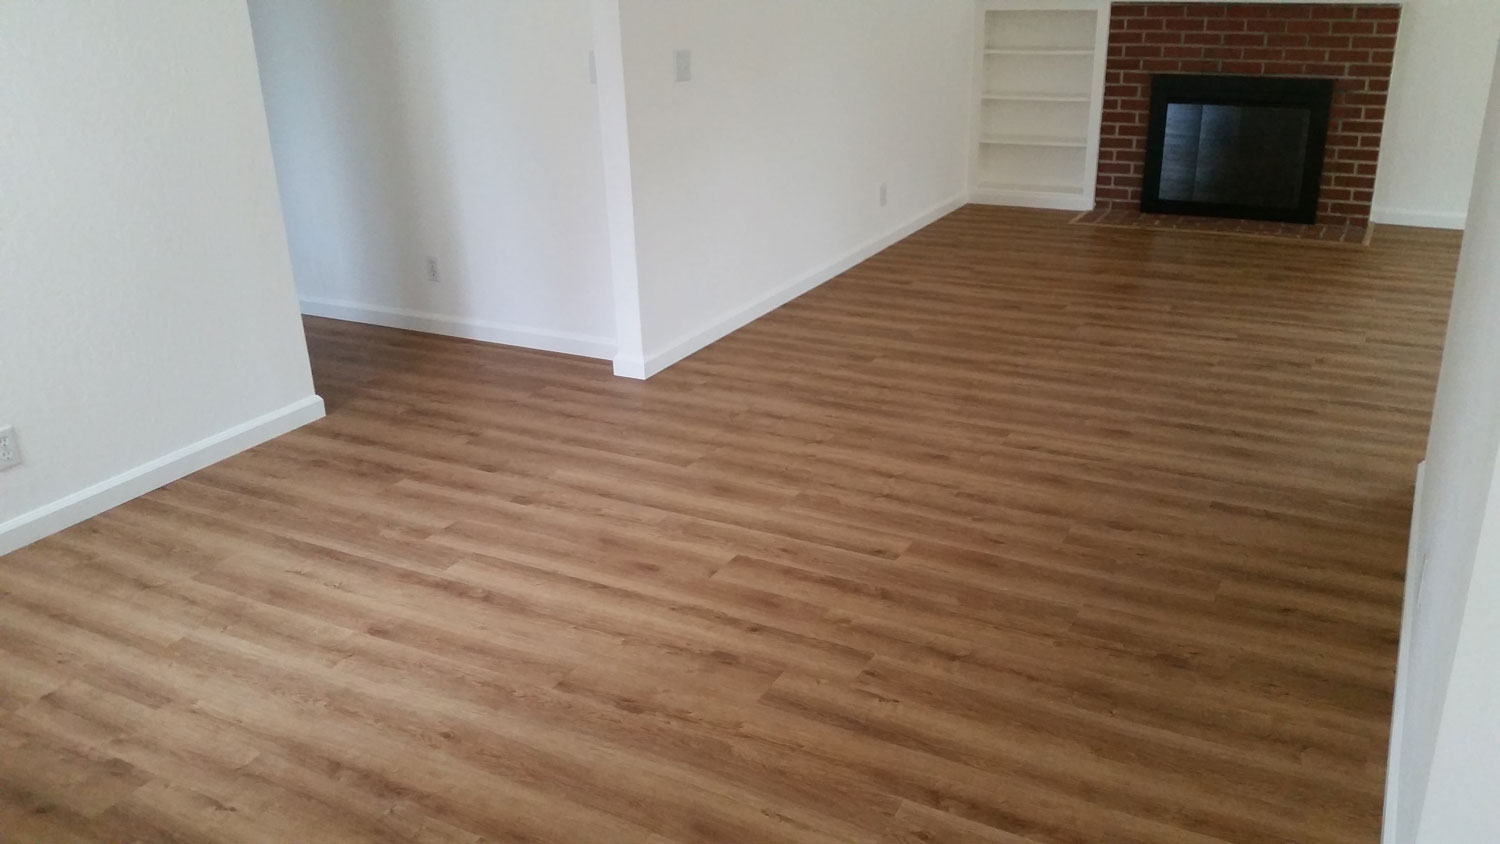 Water-proof LVT (luxury vinyl tile) installed <br/> over severely damaged hardwood flooring.<br/>  700 square feet total — Mountain View.